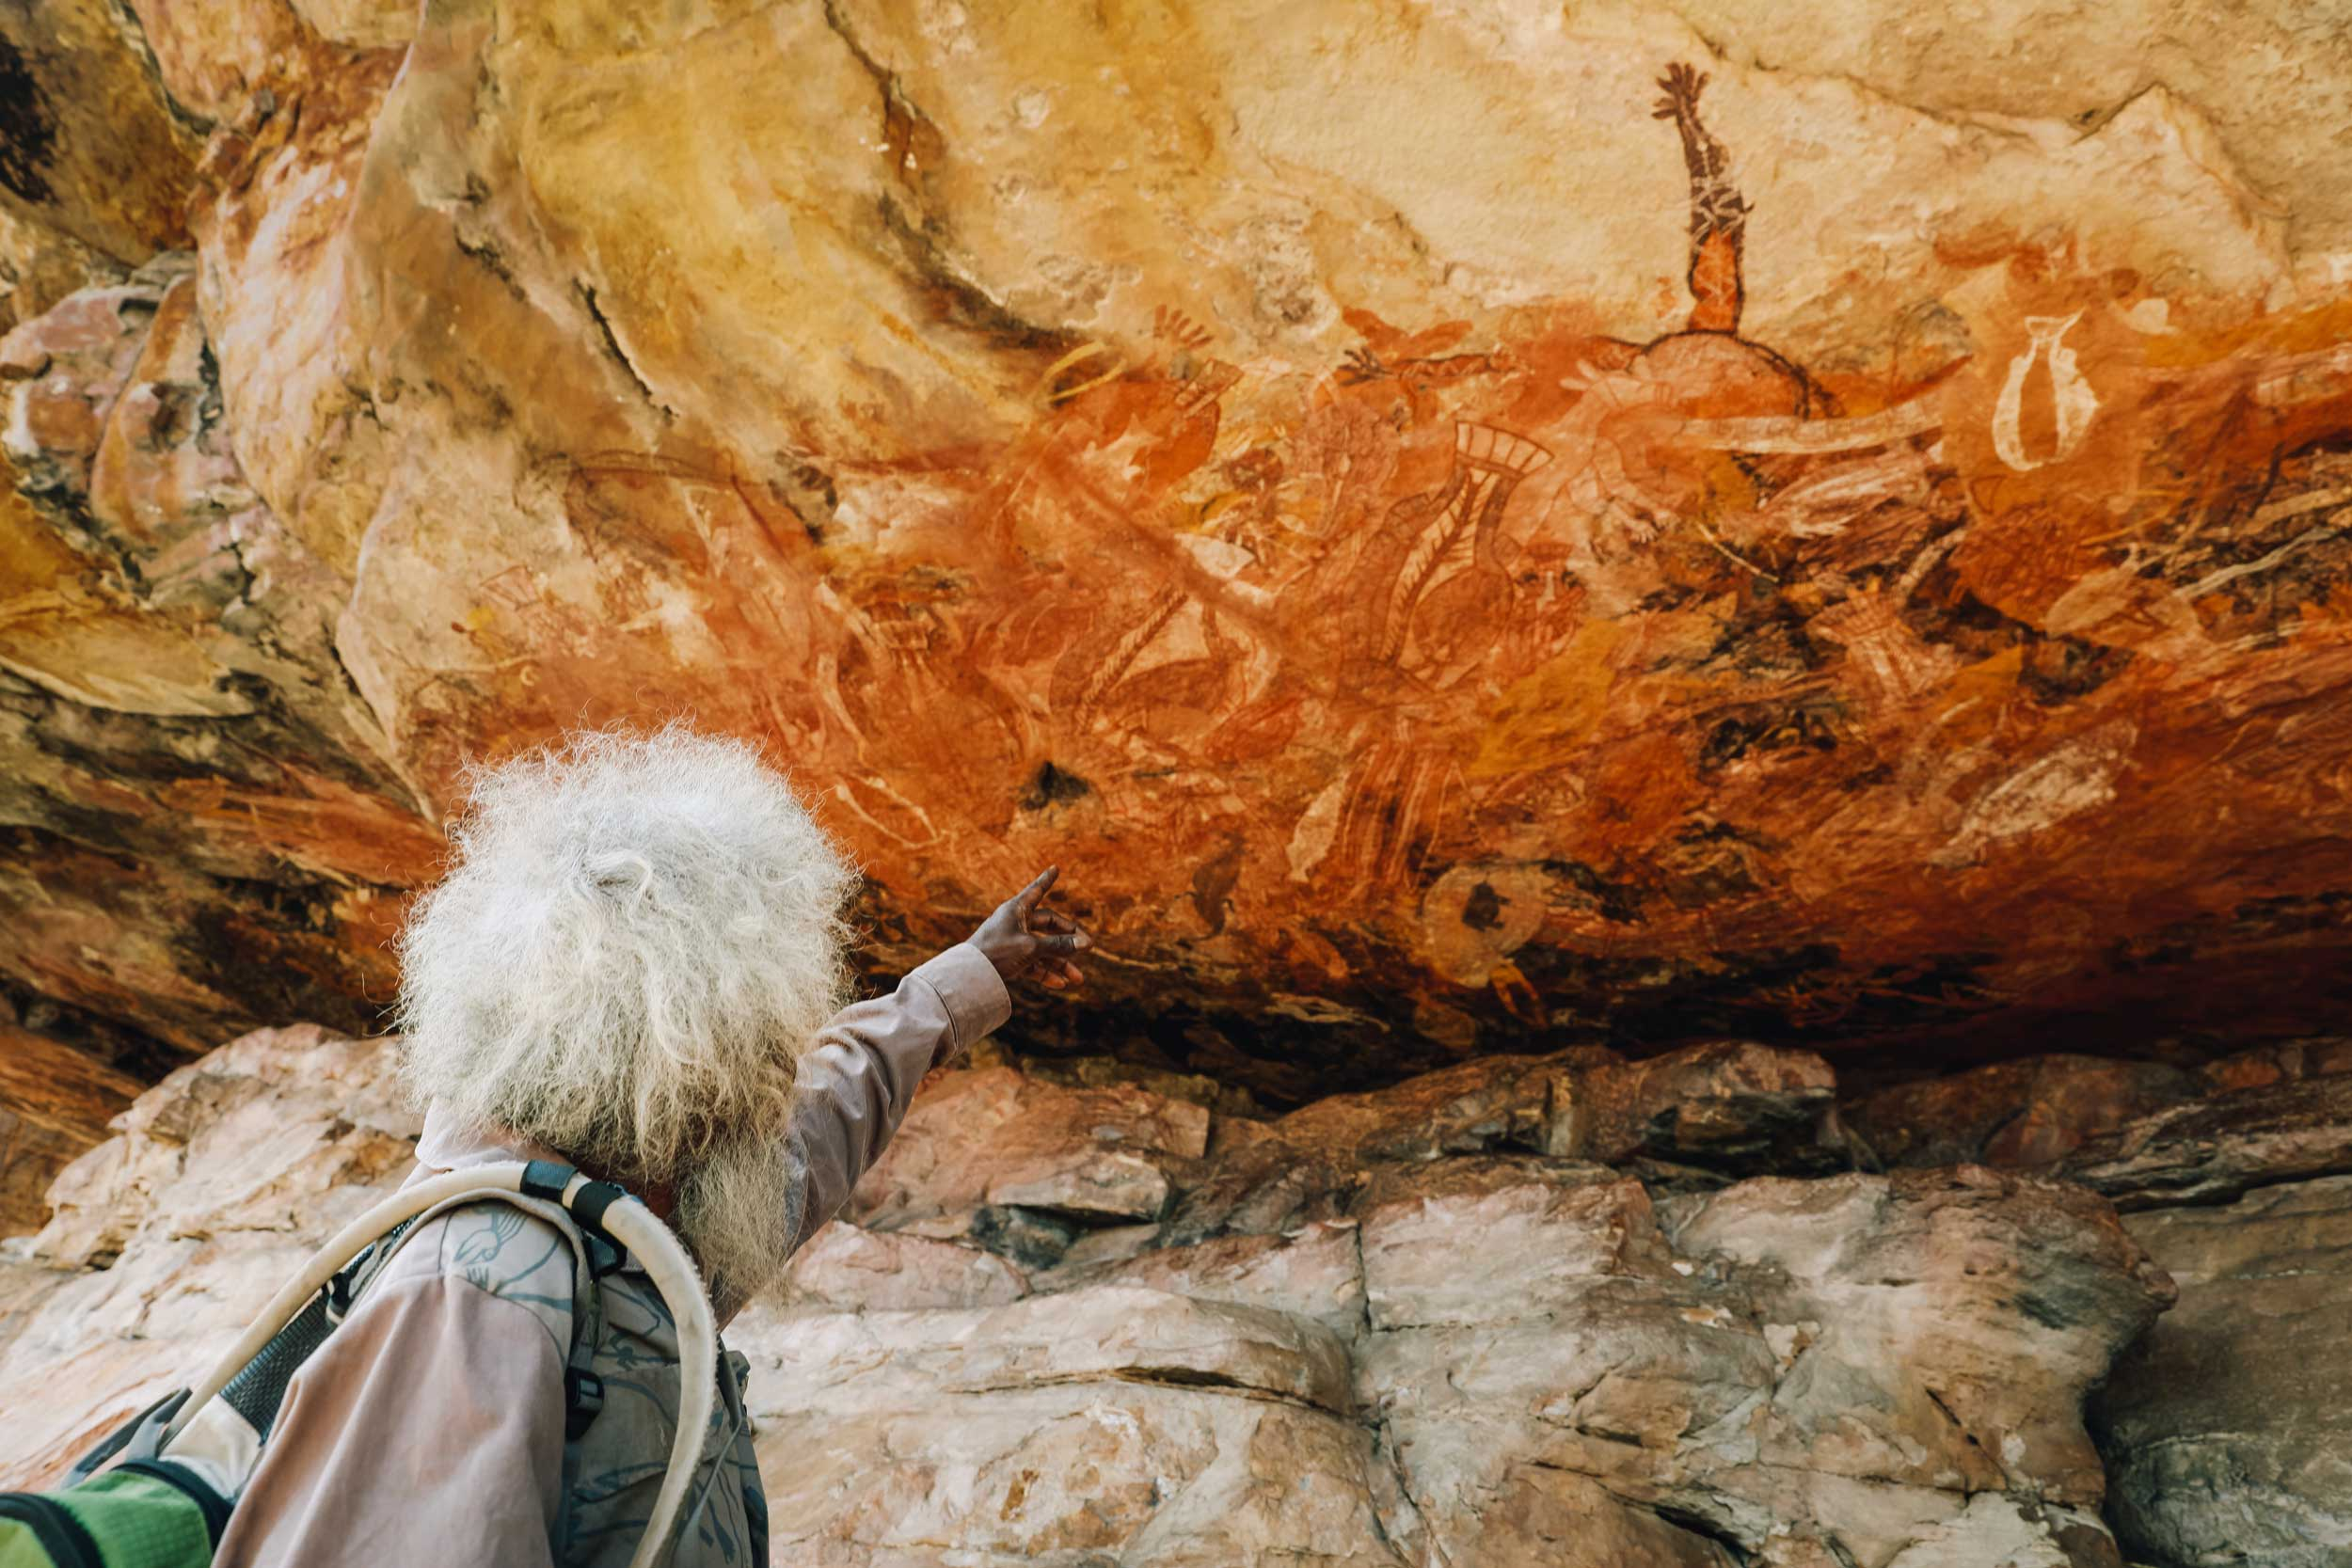 white haired man pointing out Aboriginal art painted an overhanging rock, Injalak, Australia